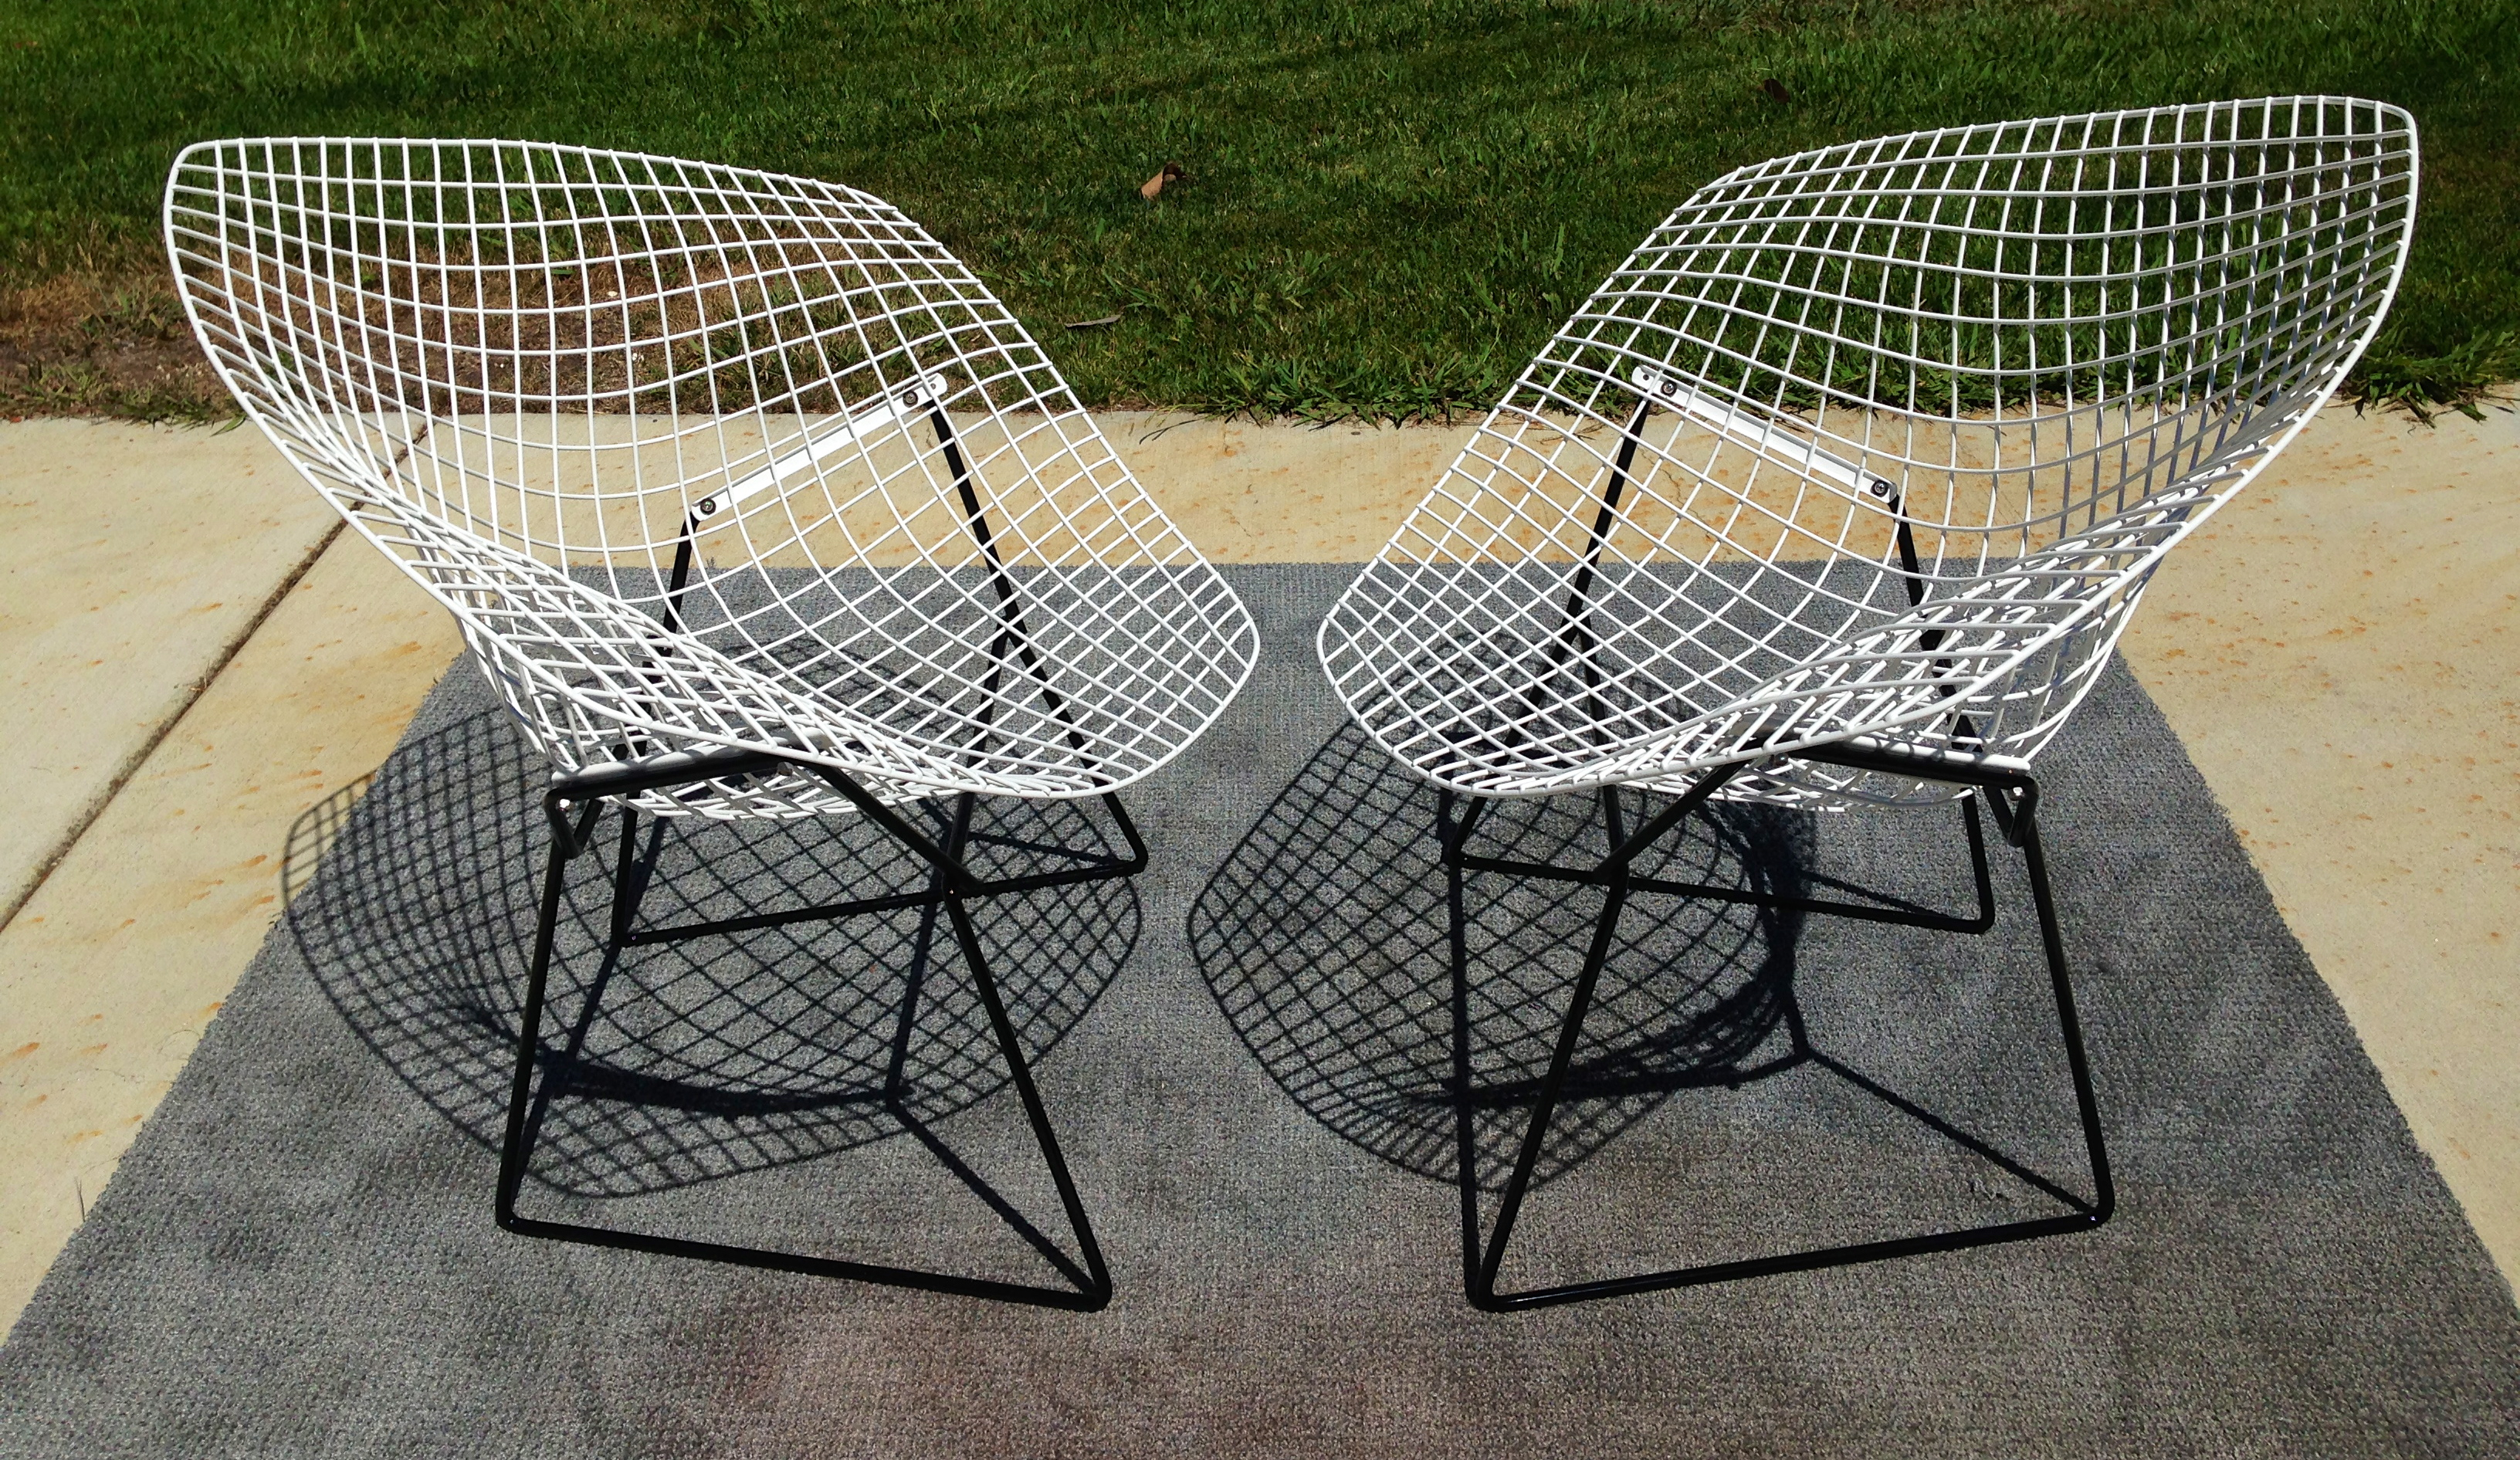 Set Of 2 Vintage Diamond Chairs Totally Restored (welding, Sand Blasting ,  Powder Coating Are Some Of The Steps The Chairs Went Through) In Gloss Bu0026W  With ...